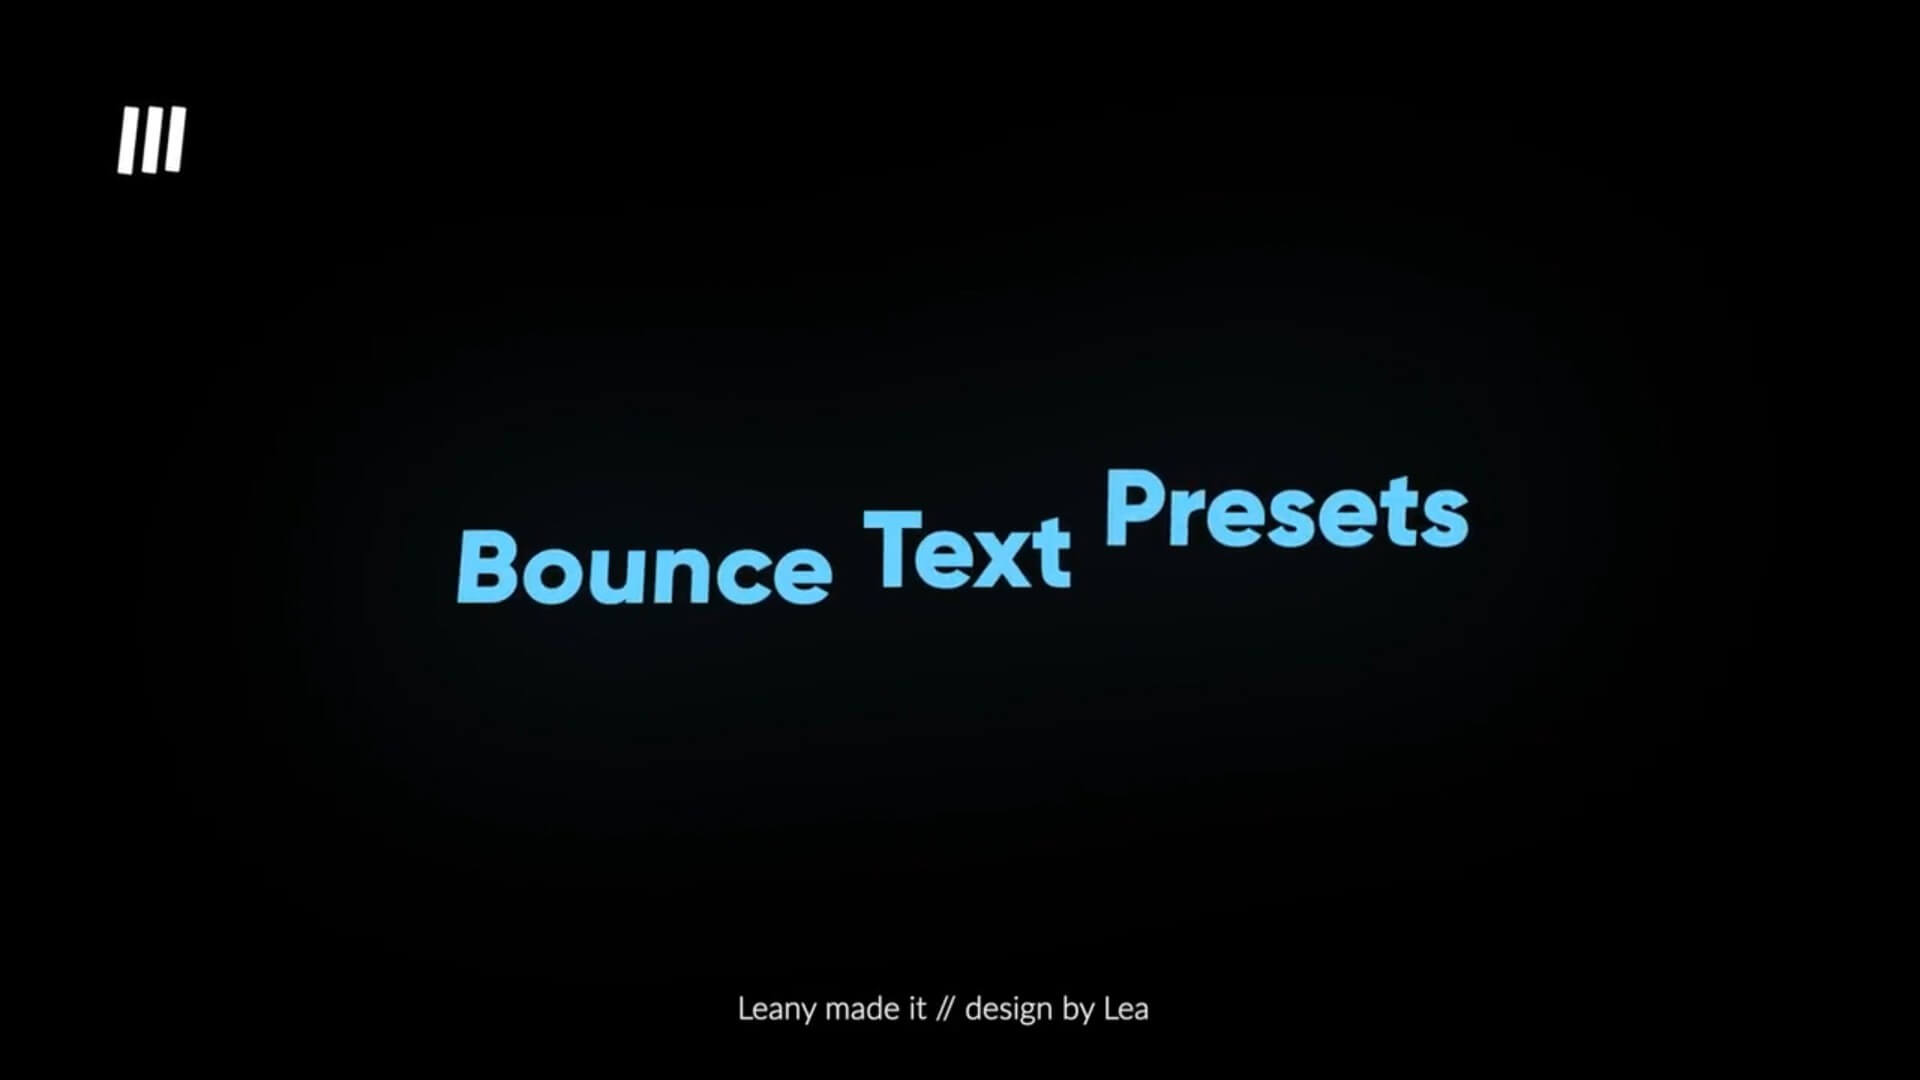 Fcpx插件 可爱弹跳果冻效果文字标题动画模板 Bounce Text Animations